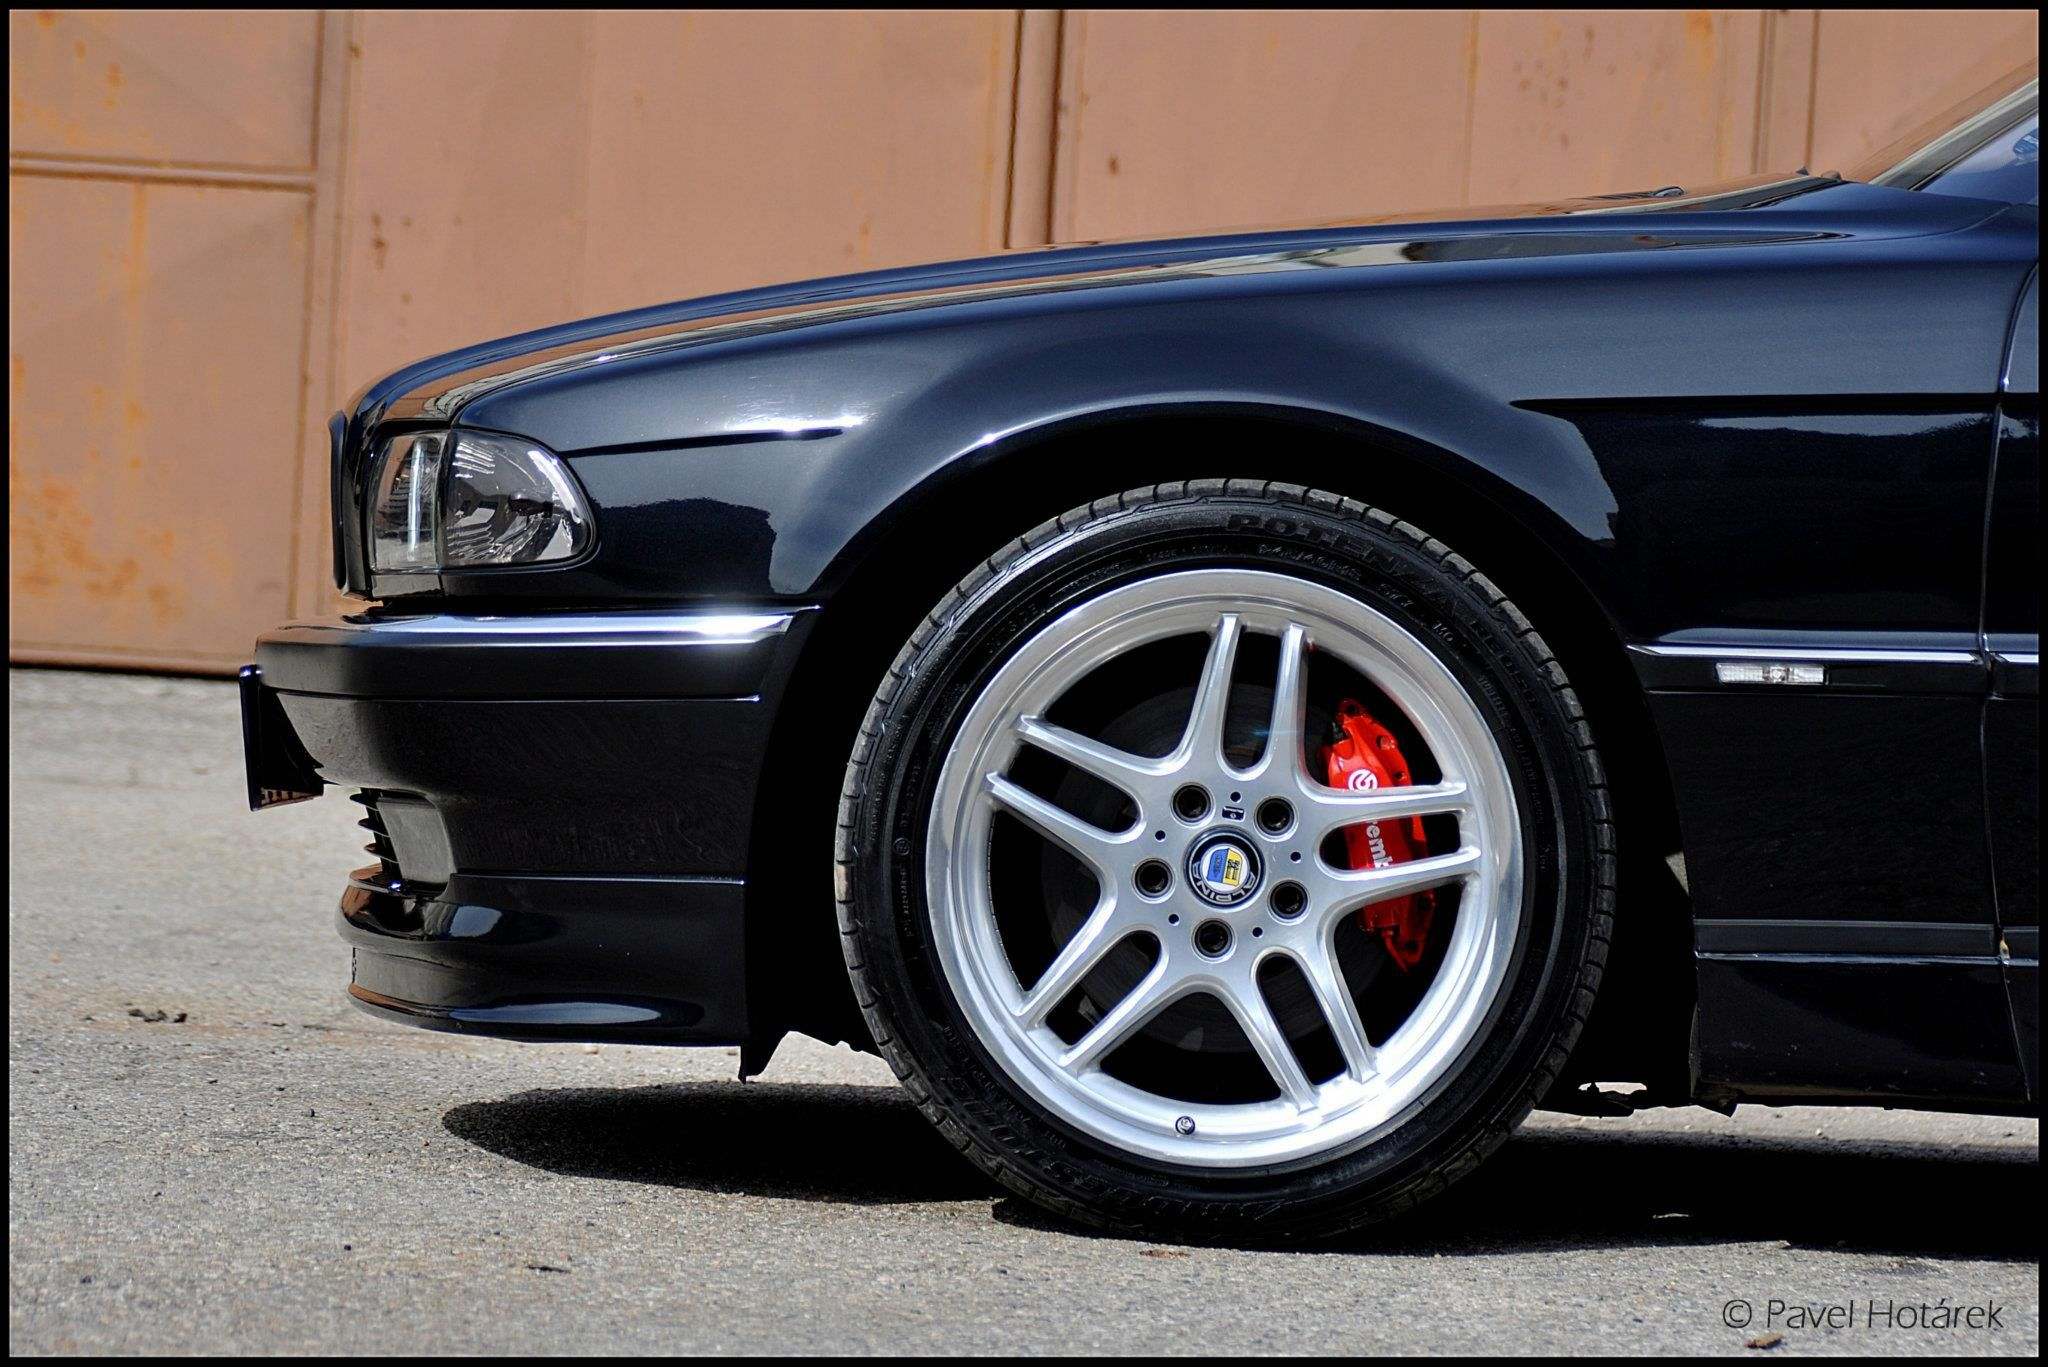 Bmw E38 M Styling 37 Parallelspeiche The Sexiest Wheels I Ever Seen Bmw E38 Bmw Alpina Bmw